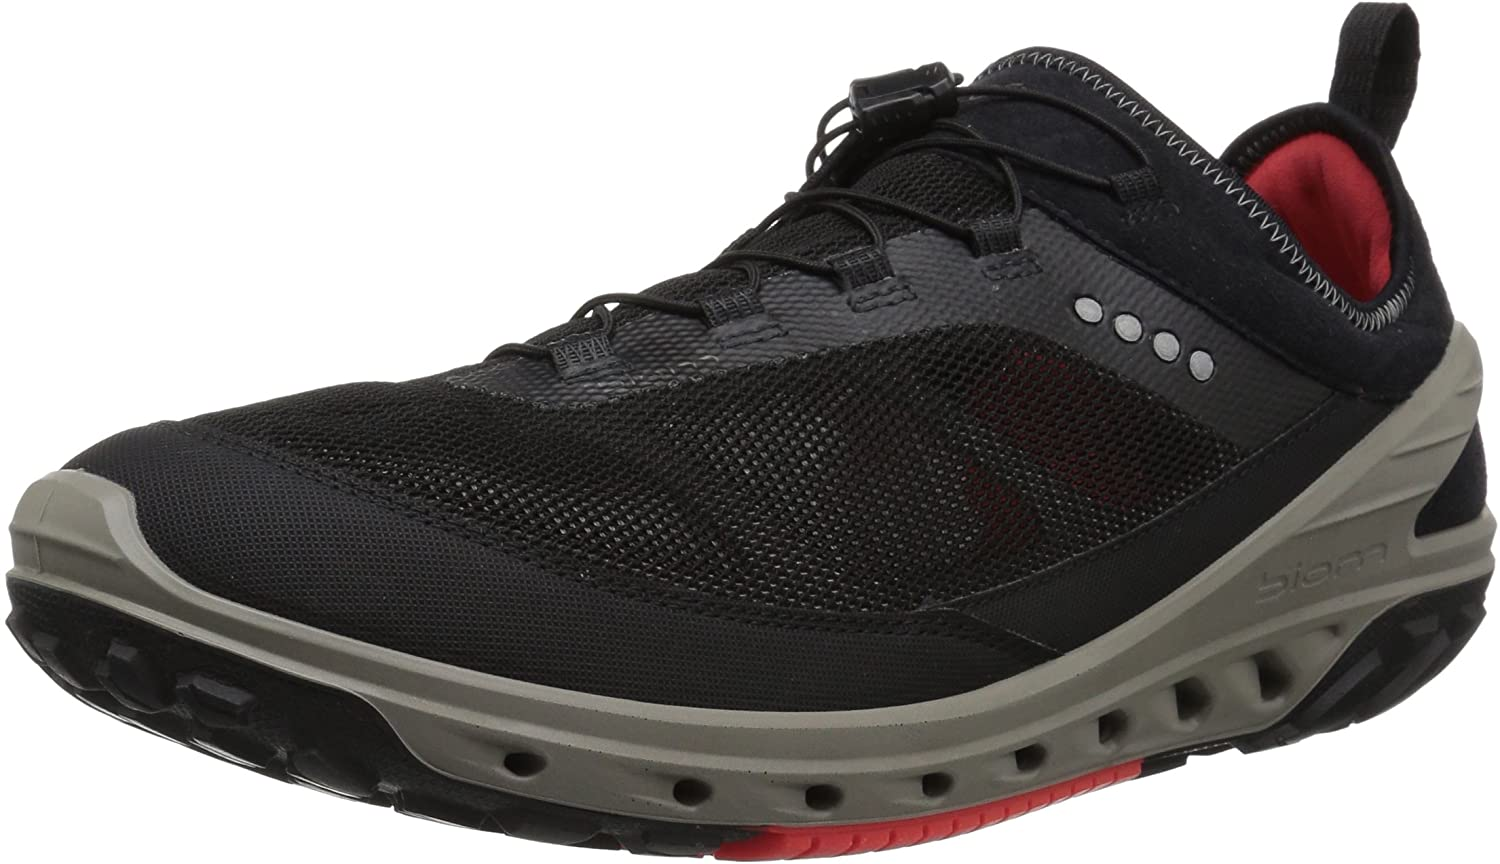 ECCO Men's Biom Venture Ventilated Hiking shoes